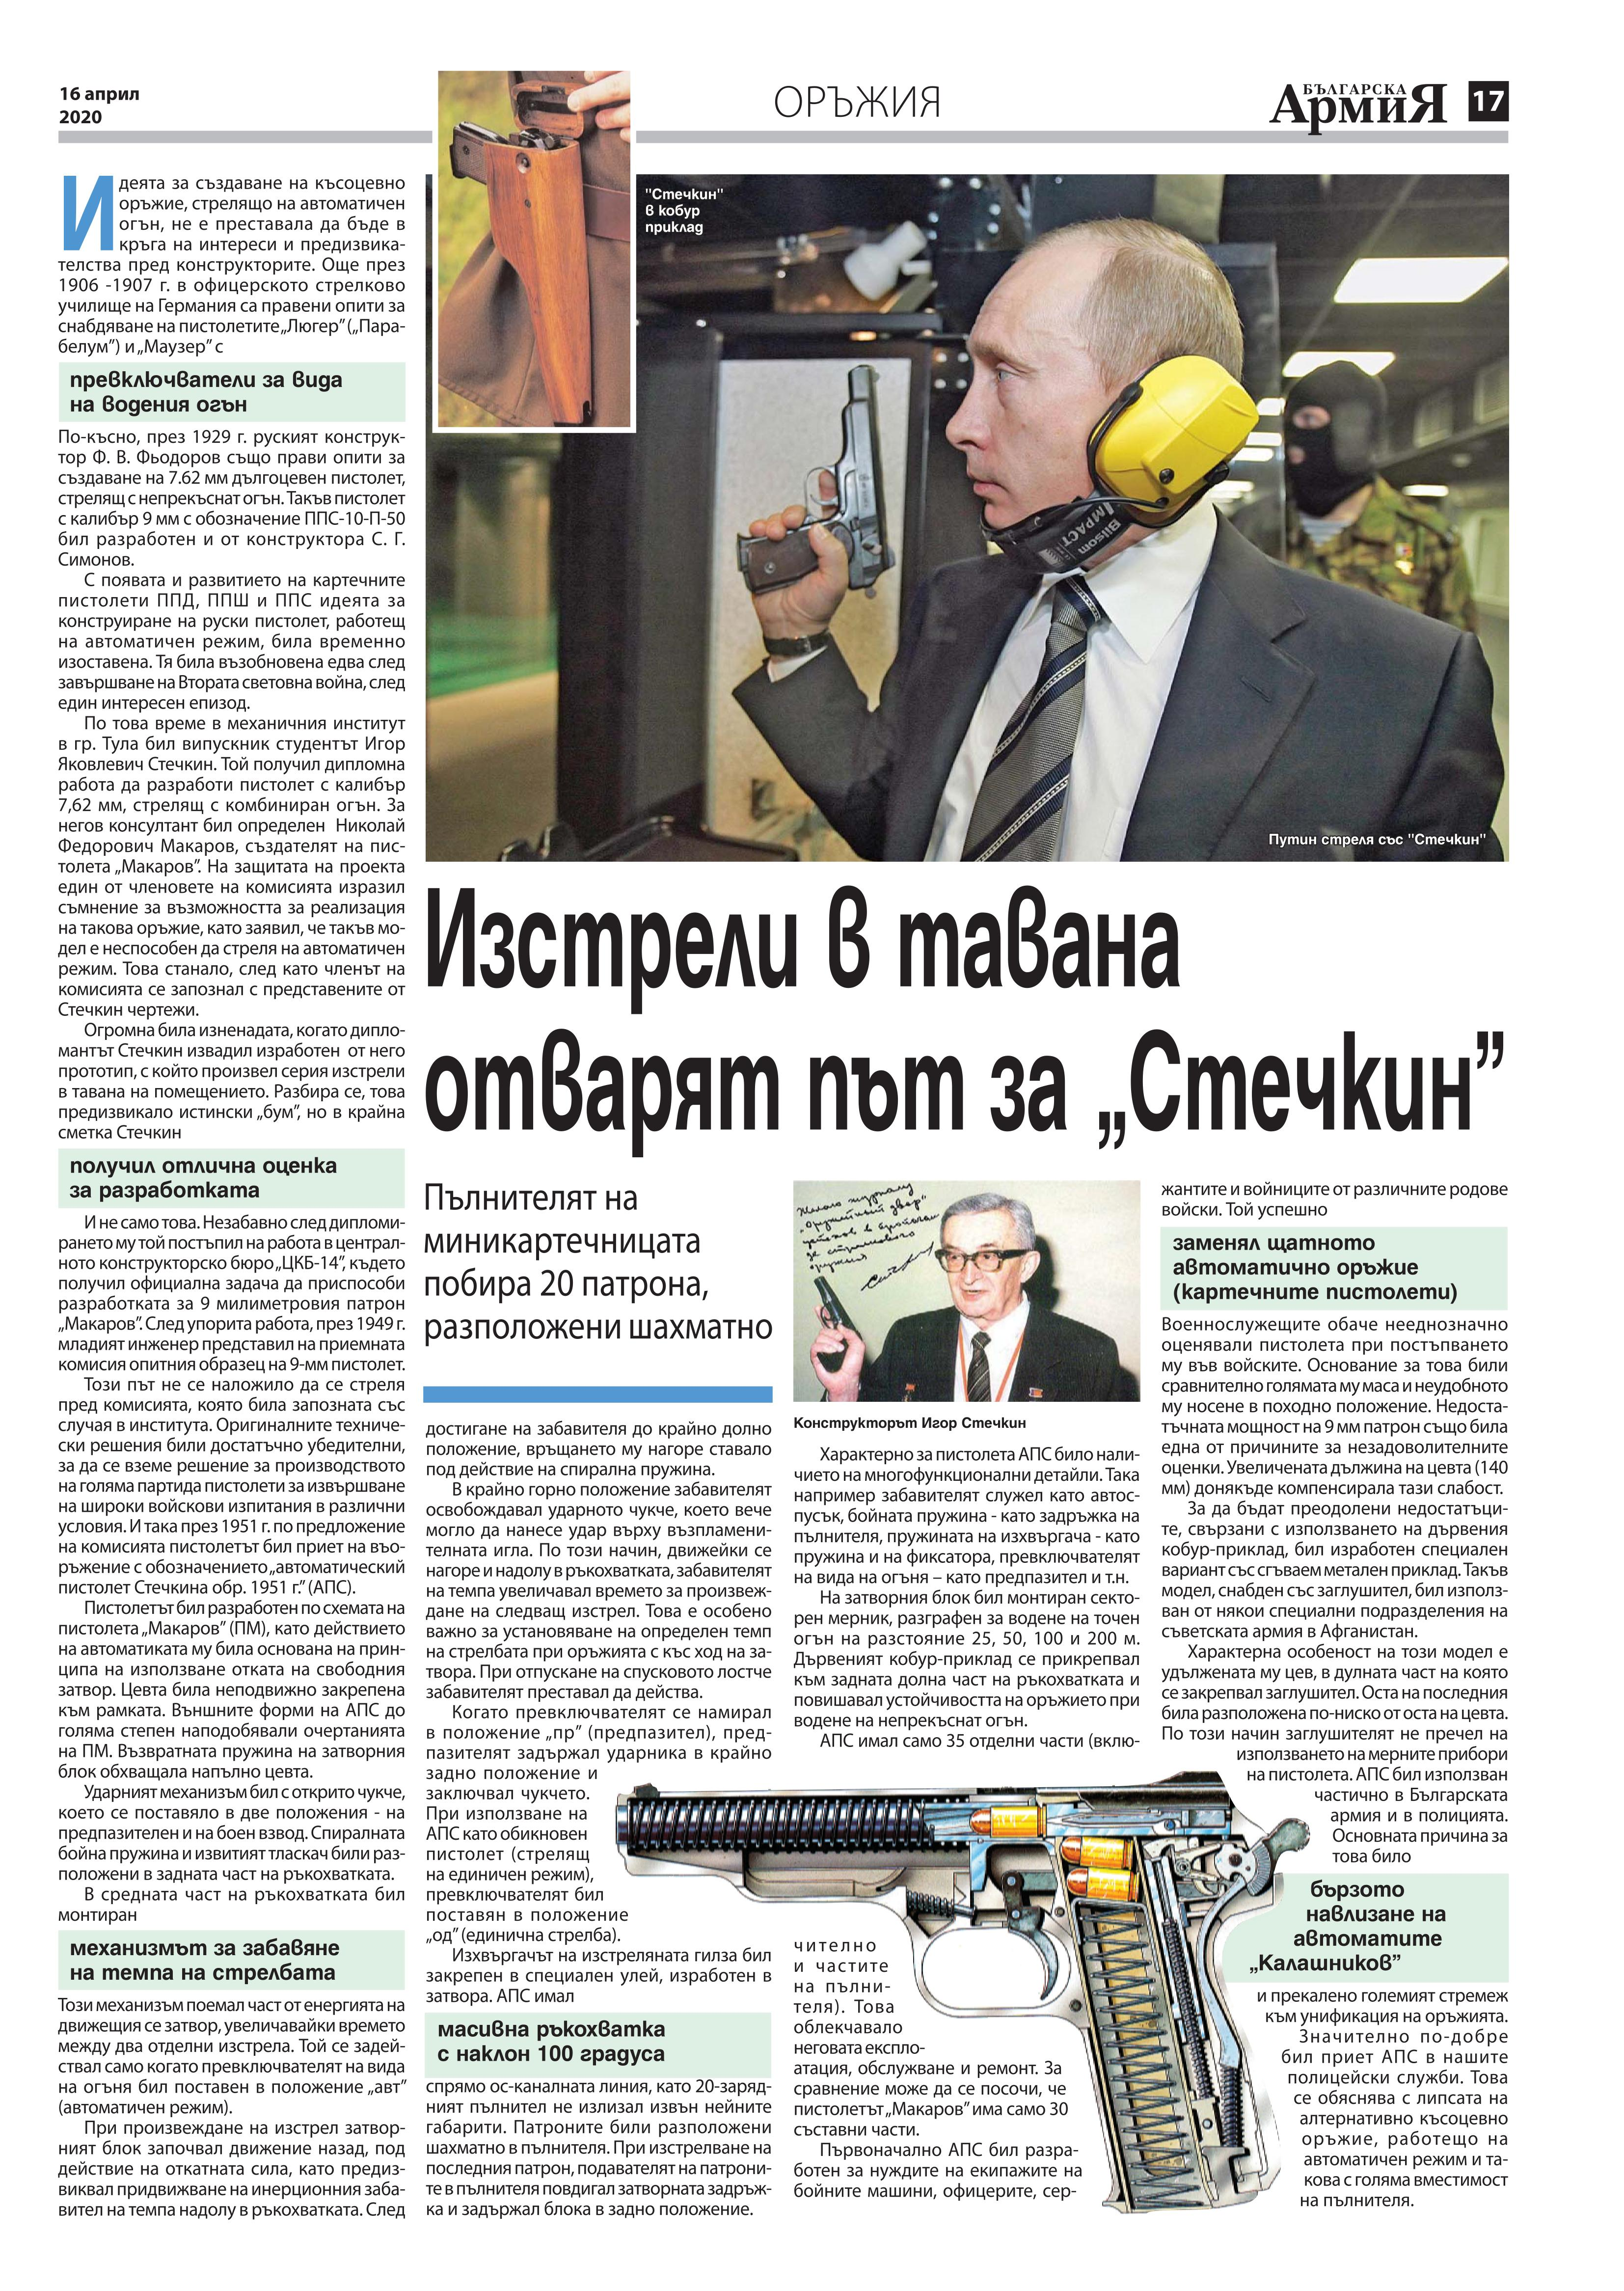 https://armymedia.bg/wp-content/uploads/2015/06/17.page1_-135.jpg